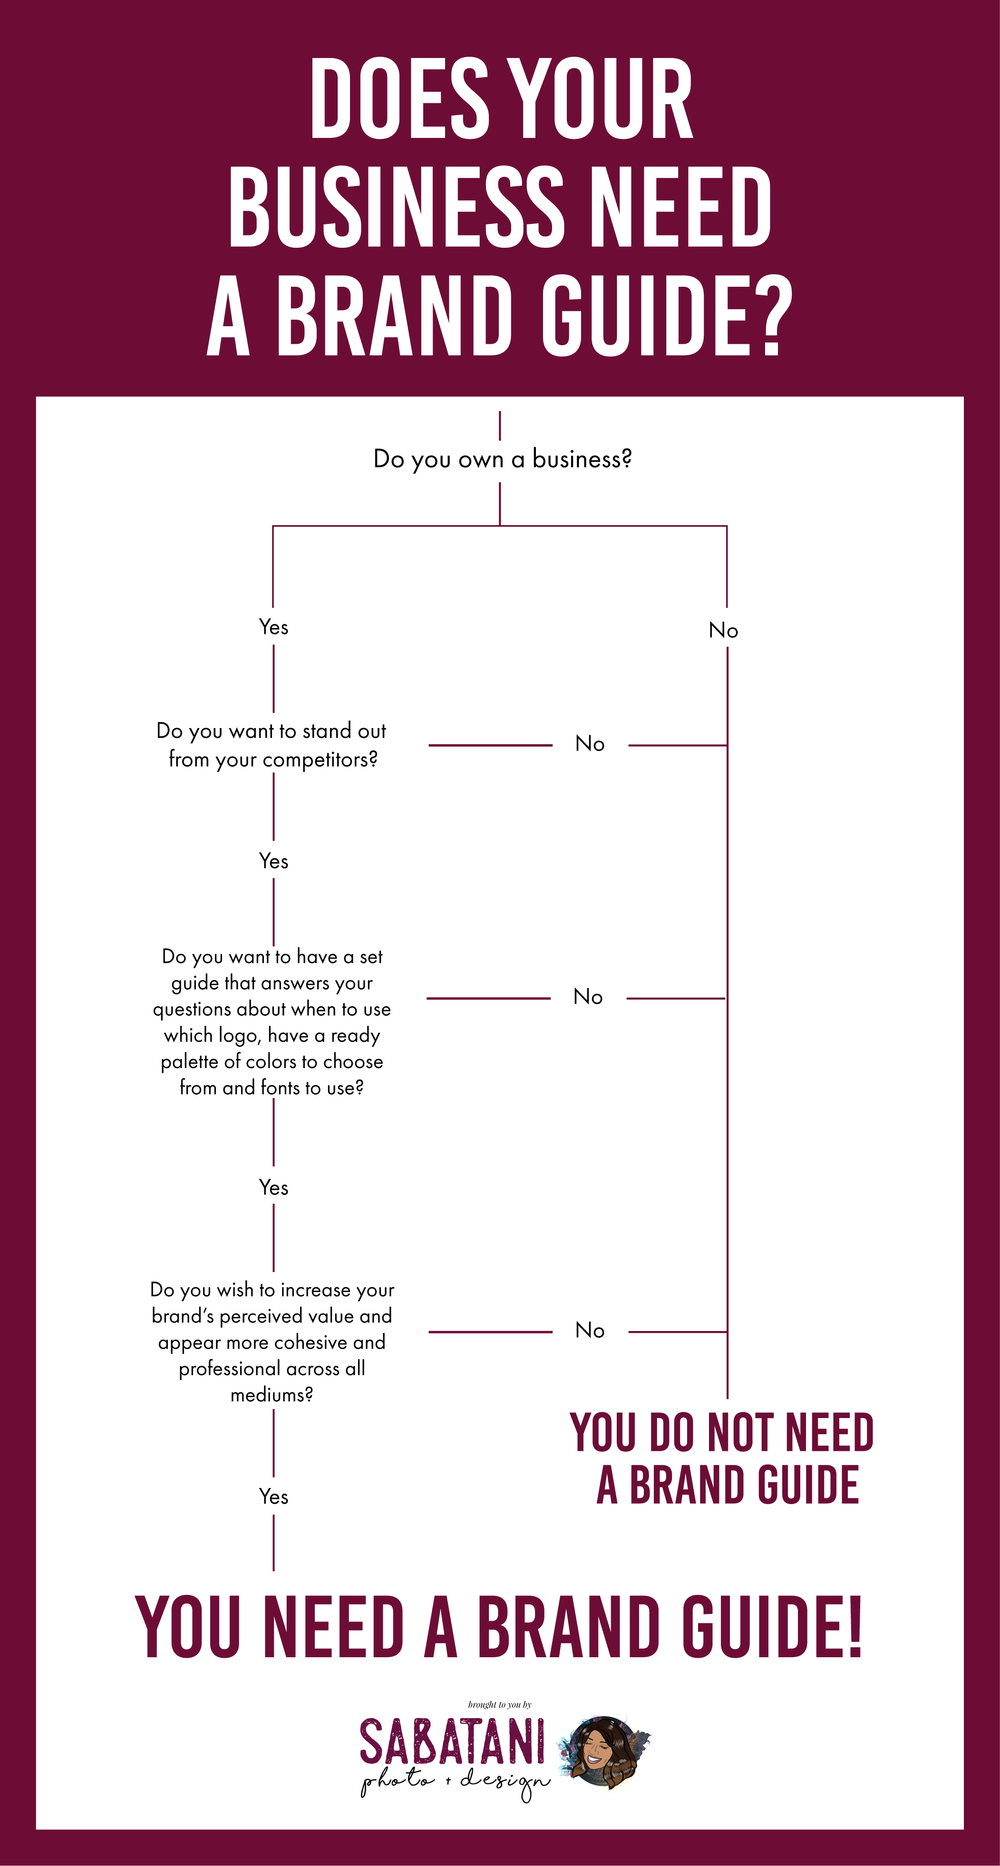 doesyourbusinessneed-01.png